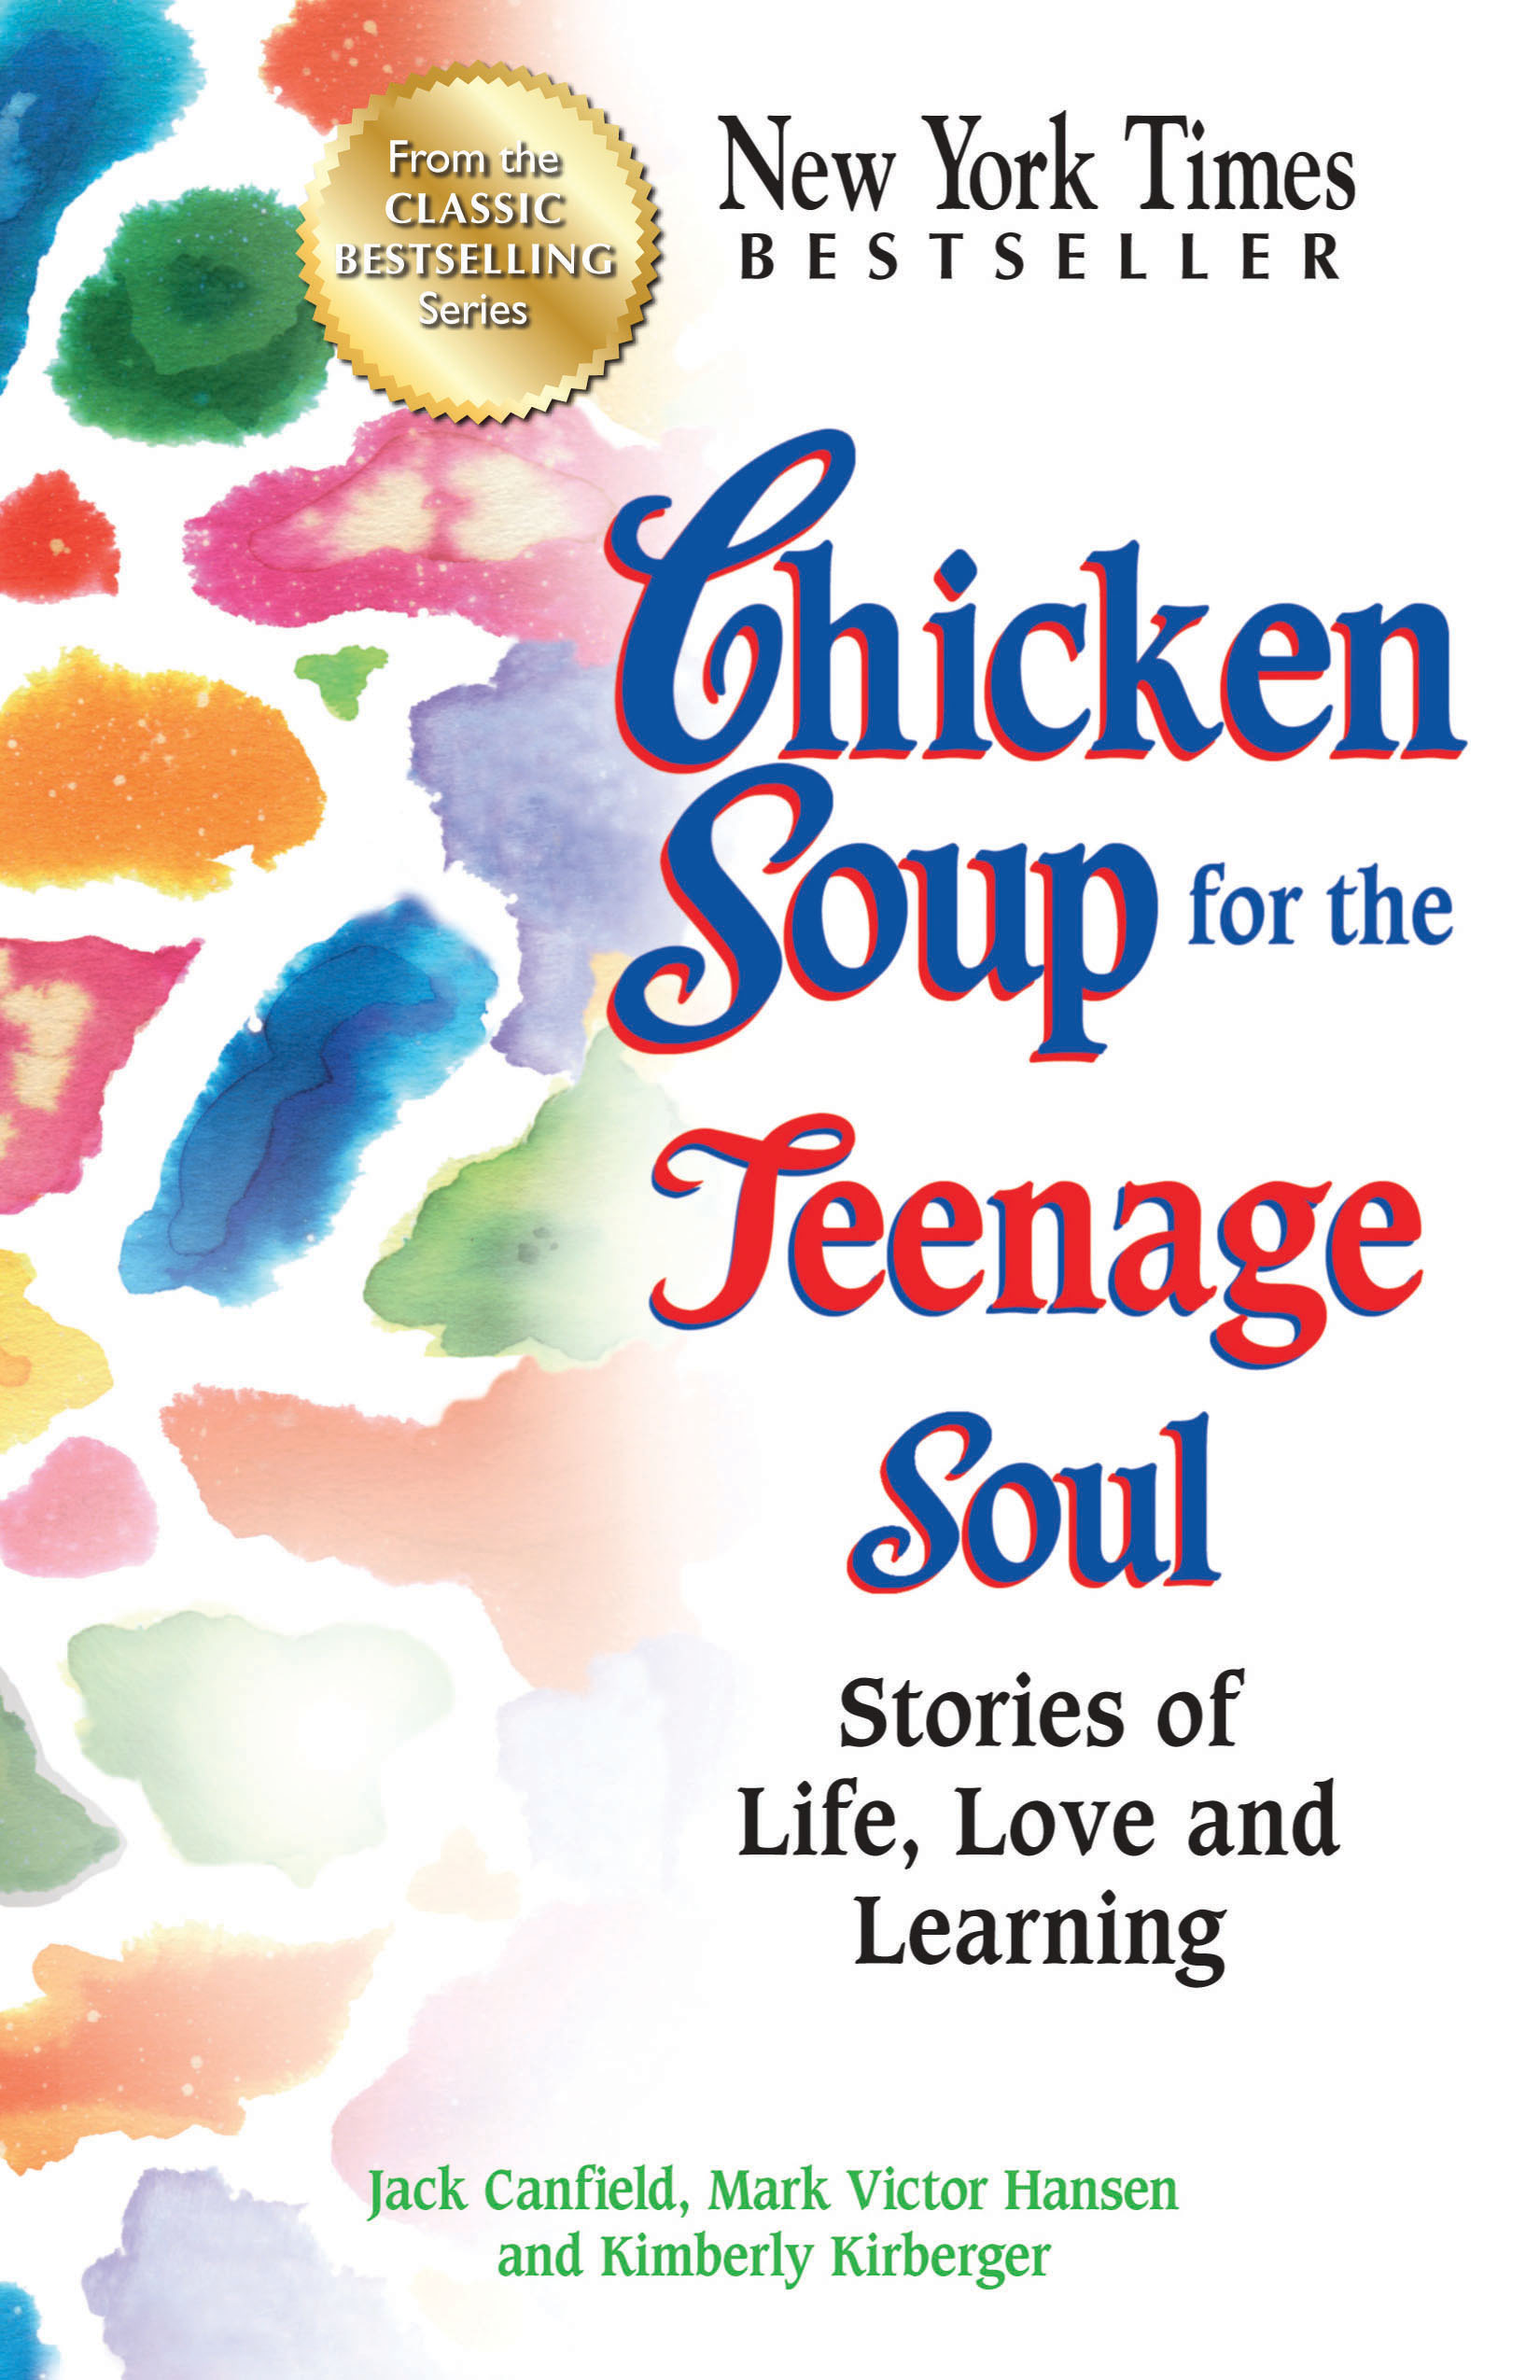 Book Cover Image (jpg): Chicken Soup for the Teenage Soul